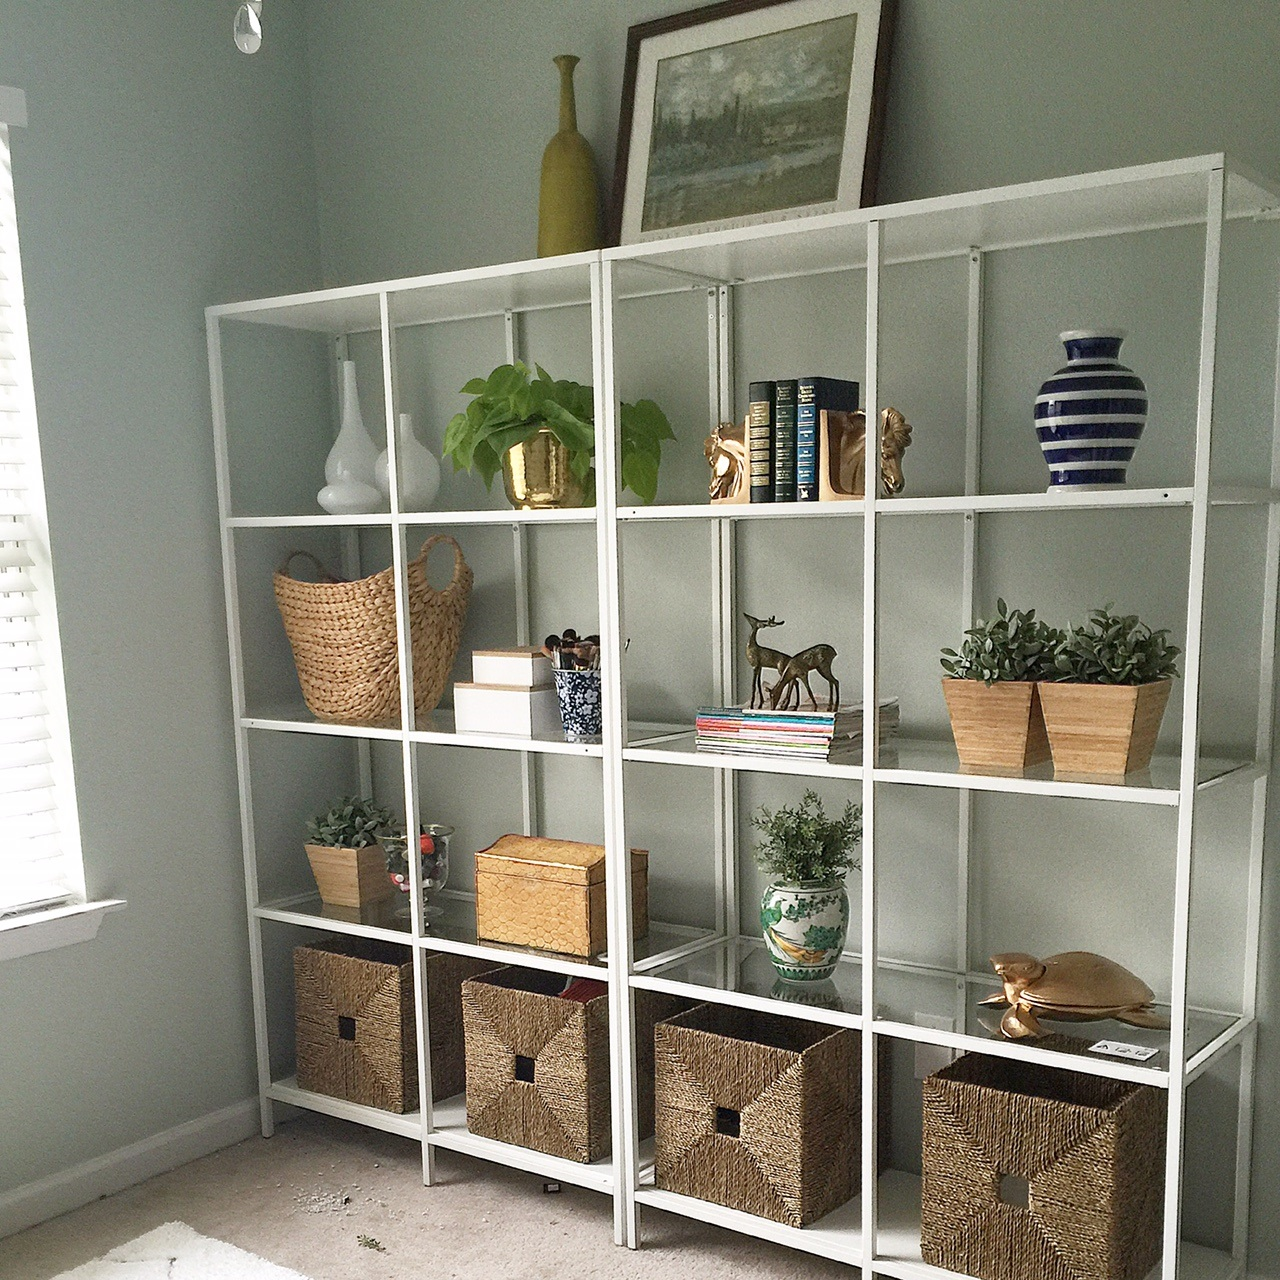 ikea vittsjo shelving project 1 room 30 days week one live pretty on a penny. Black Bedroom Furniture Sets. Home Design Ideas